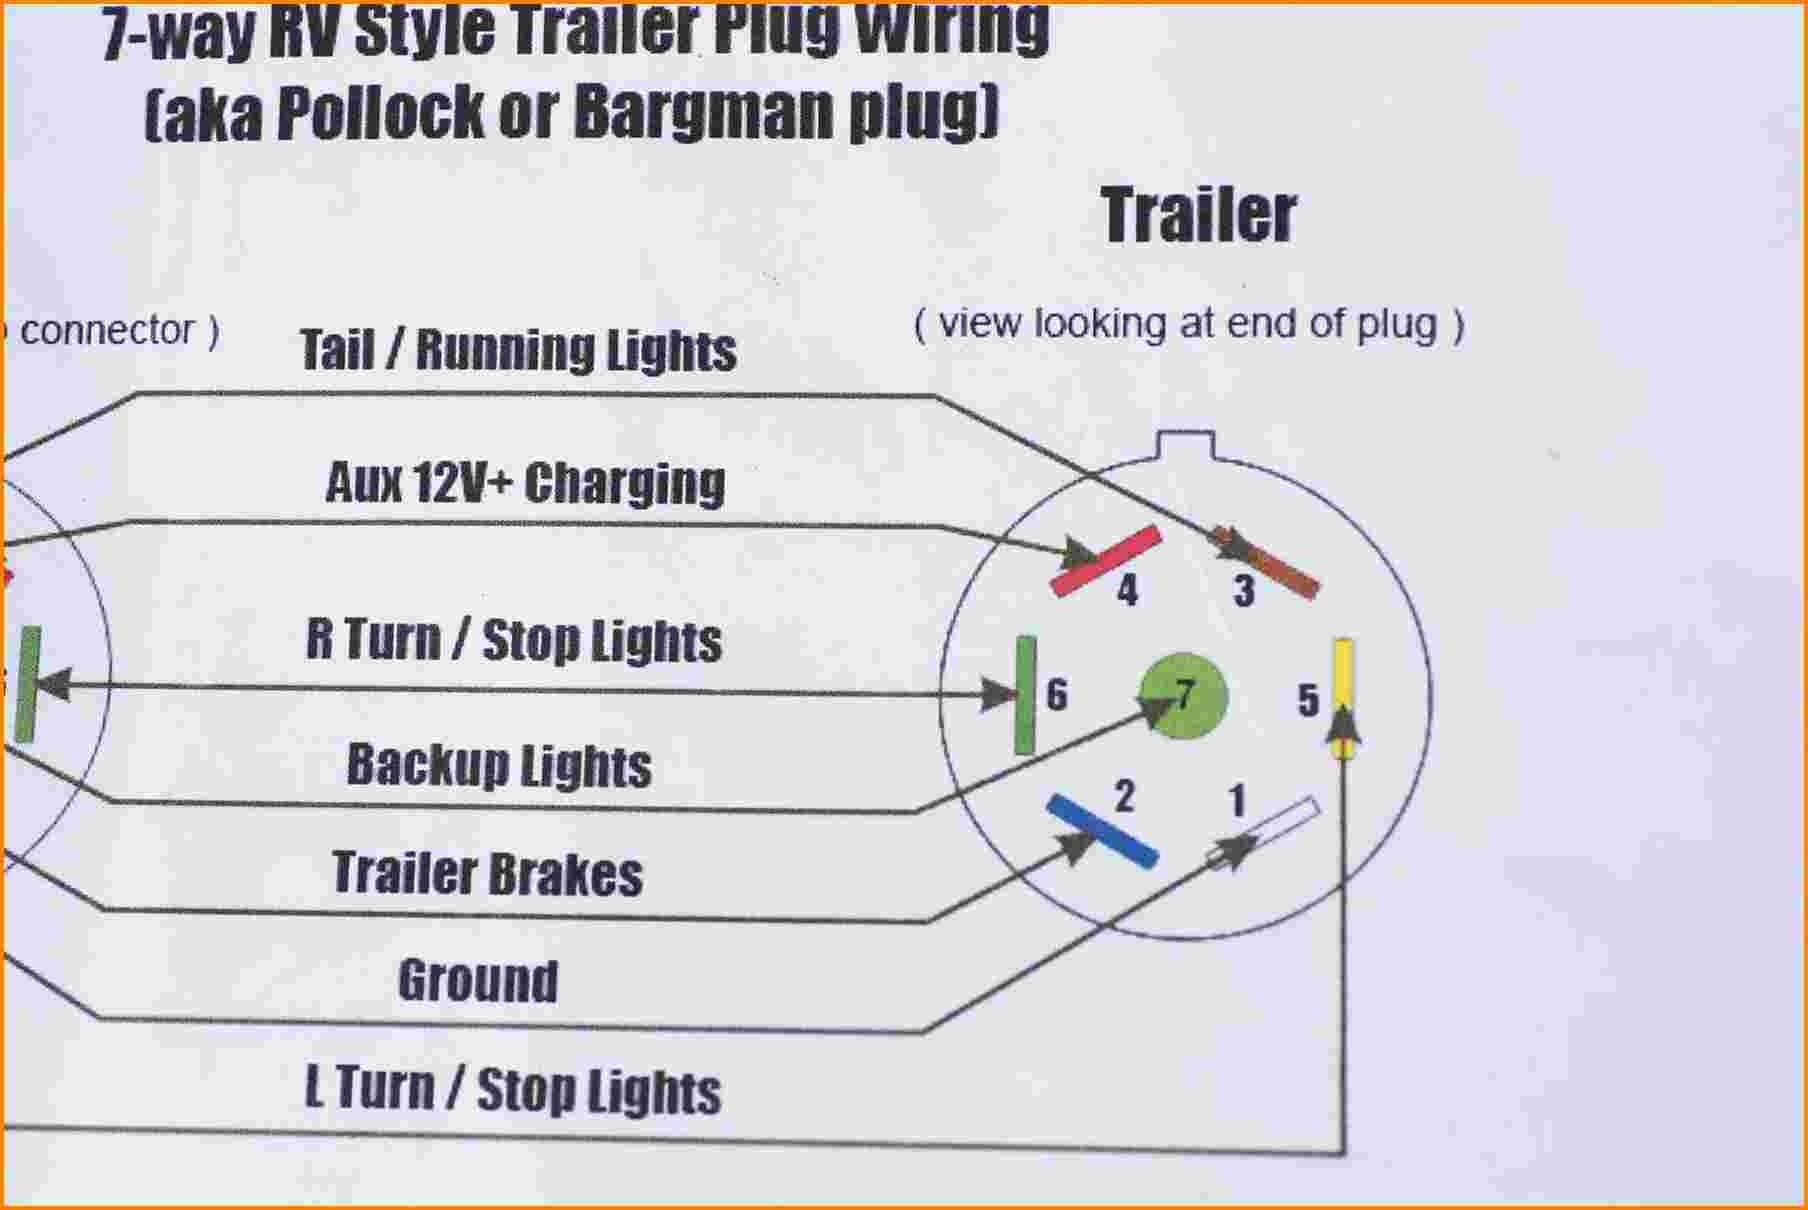 ford trailer wiring diagram 7 way trailer wiring diagram 7 way to 4 way 7 way trailer plug wiring diagram ford | free wiring diagram #2